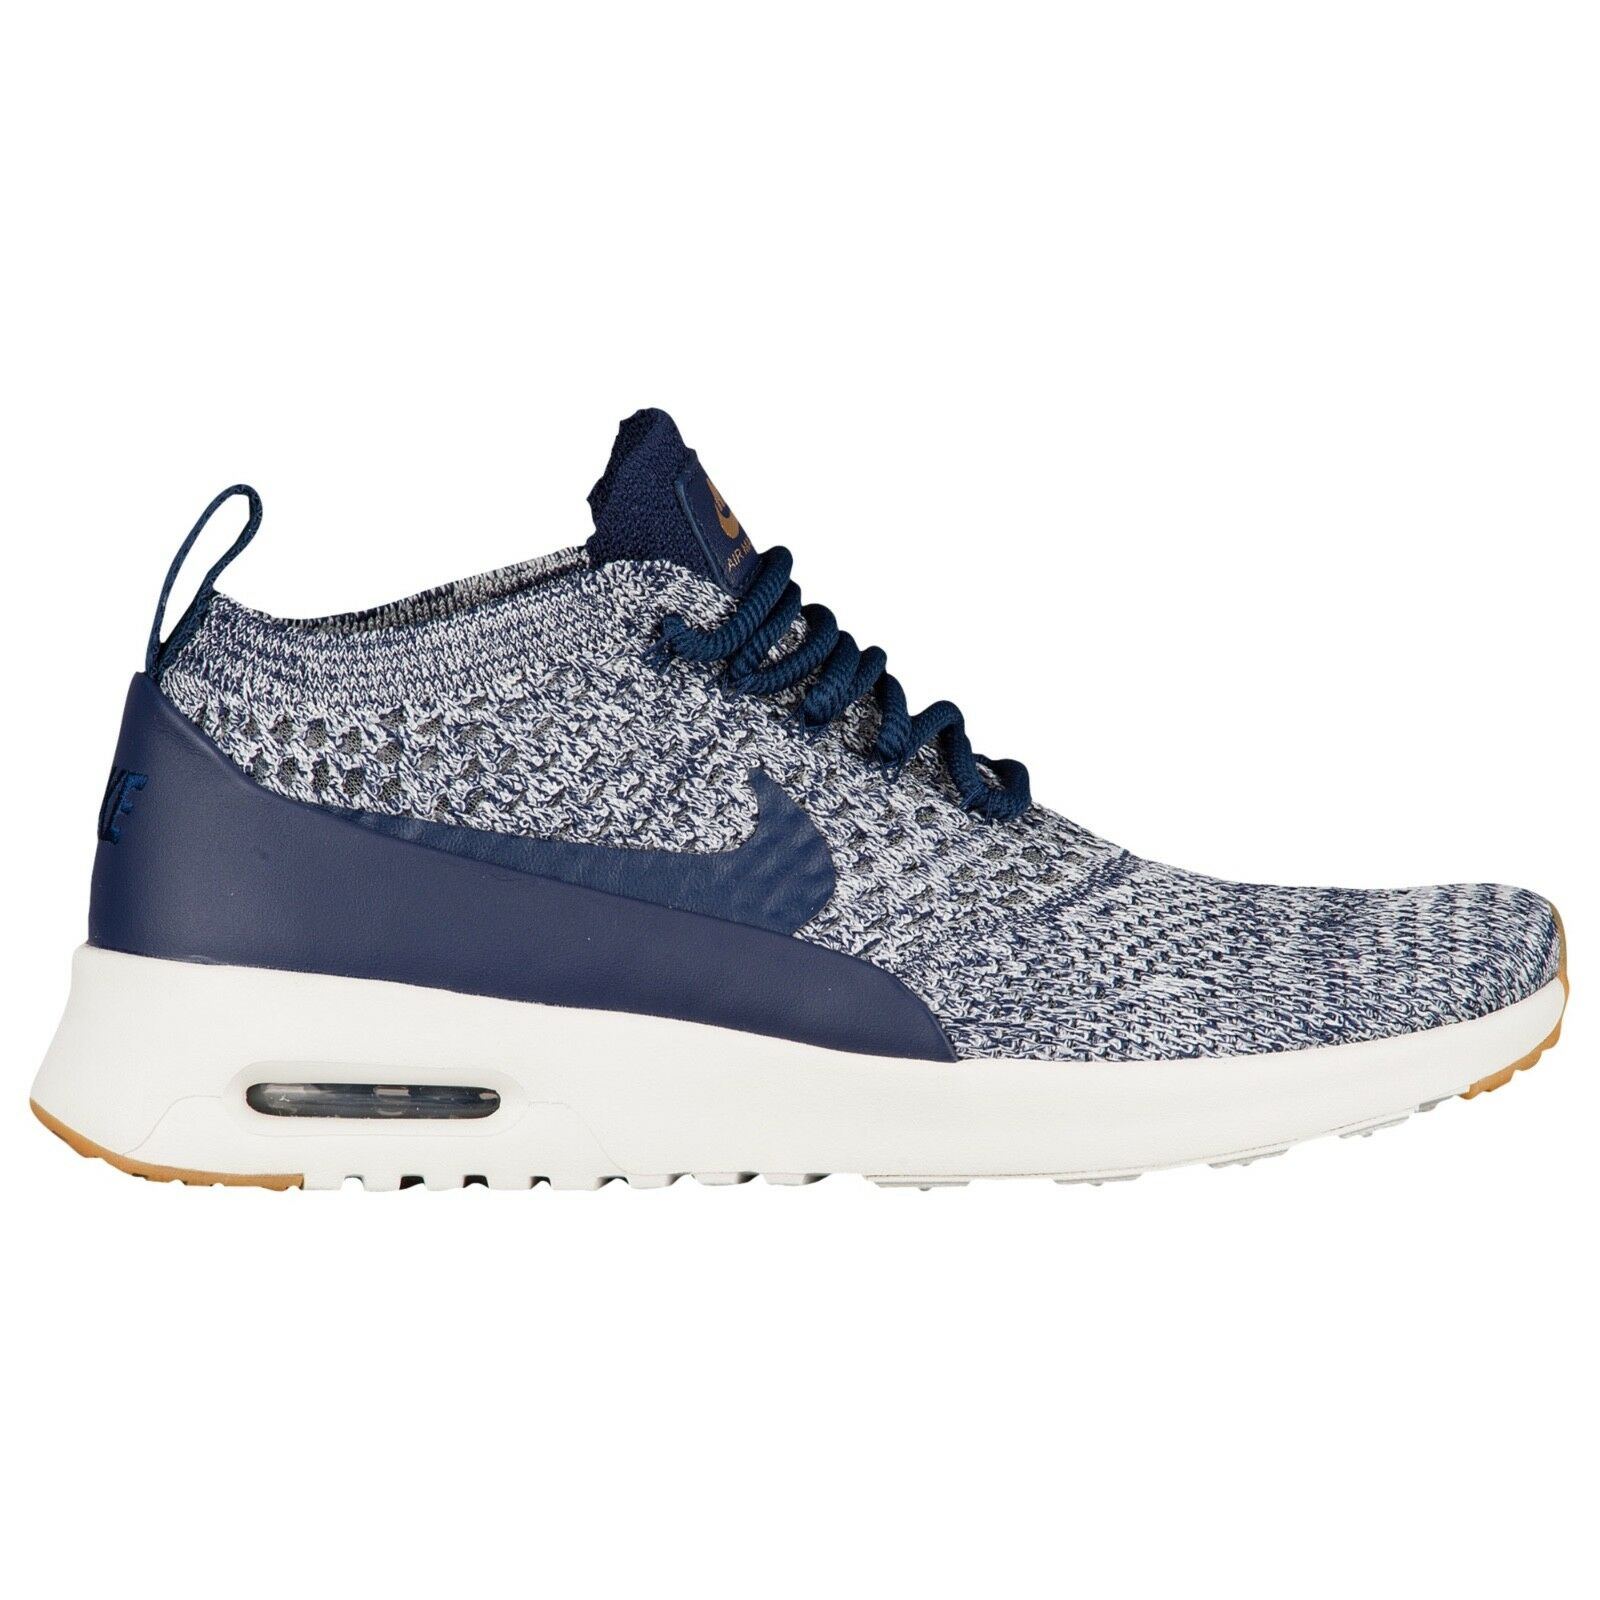 Nike Air Max Thea Ultra FK Running shoes Size 5 Navy bluee White 881175 402